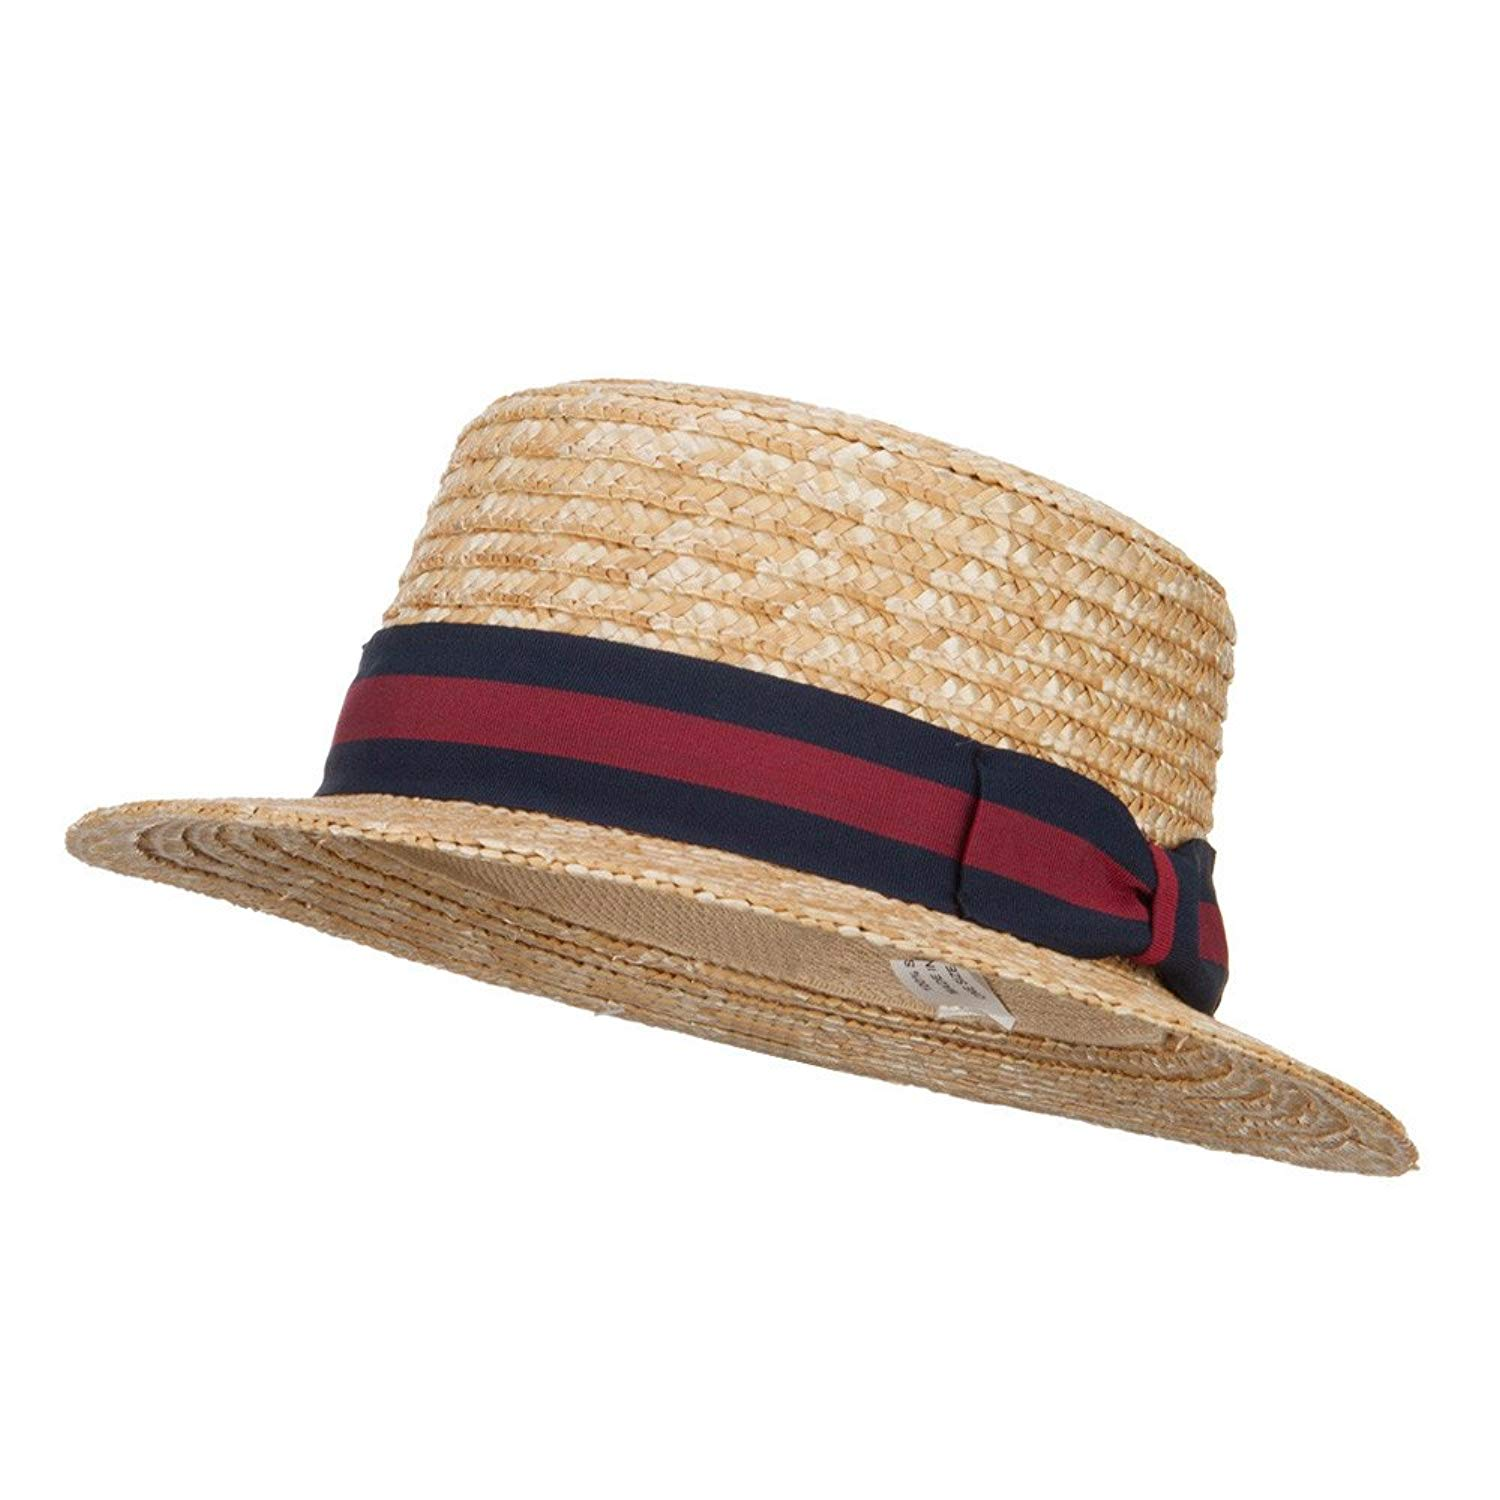 30109d508942a Get Quotations · Boy s Vintage Straw Boater Hat